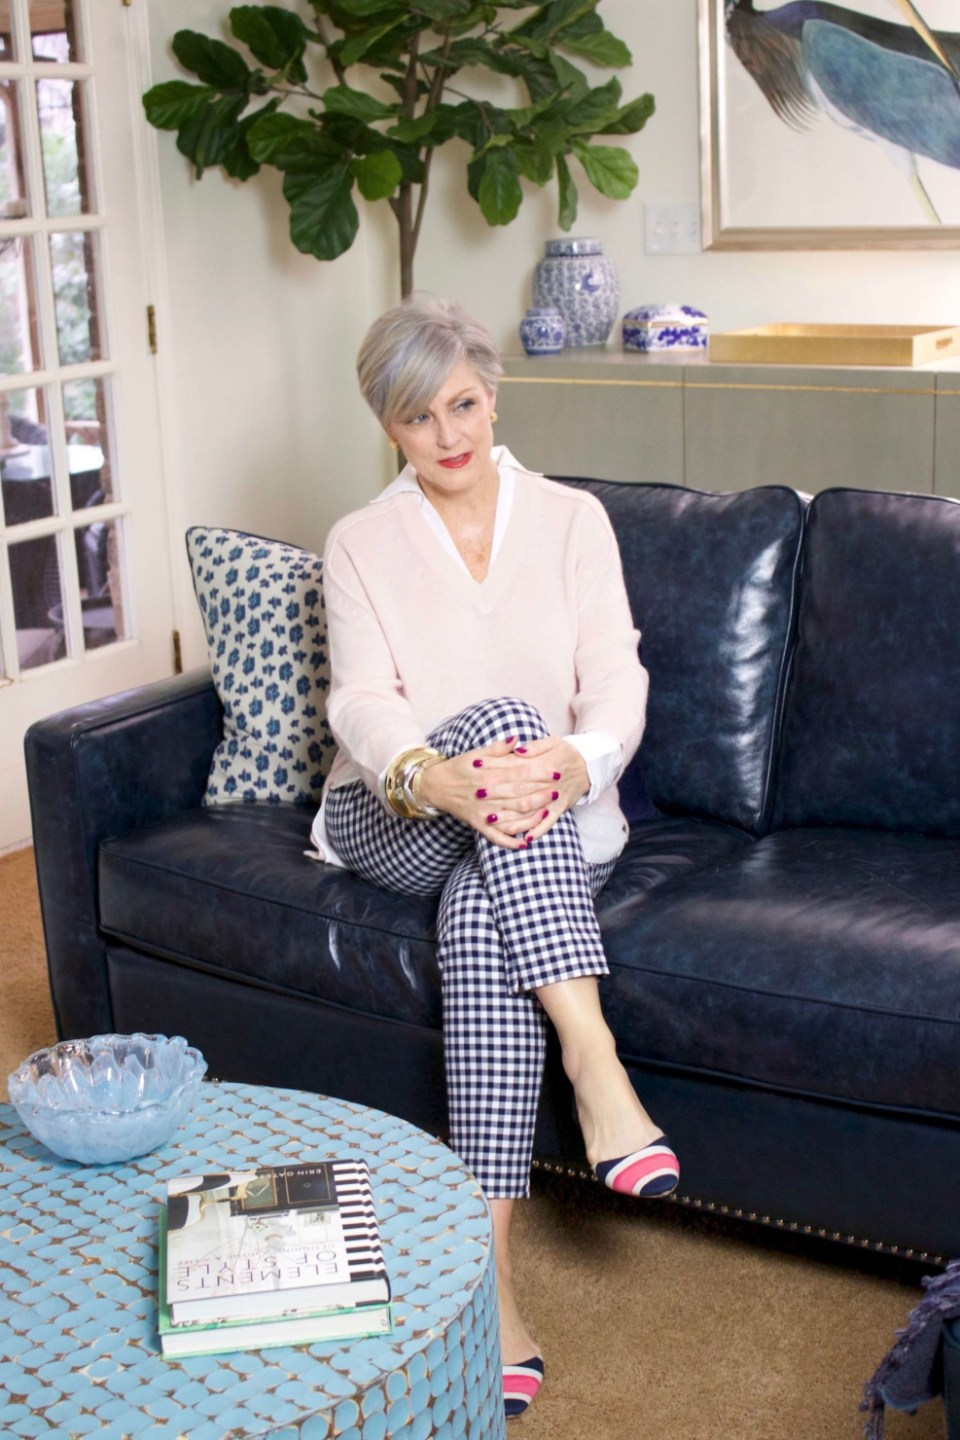 beth from Style at a Certain Age wears a paloma pink sweater with white underlay, gingham pants, and pointy toe flats